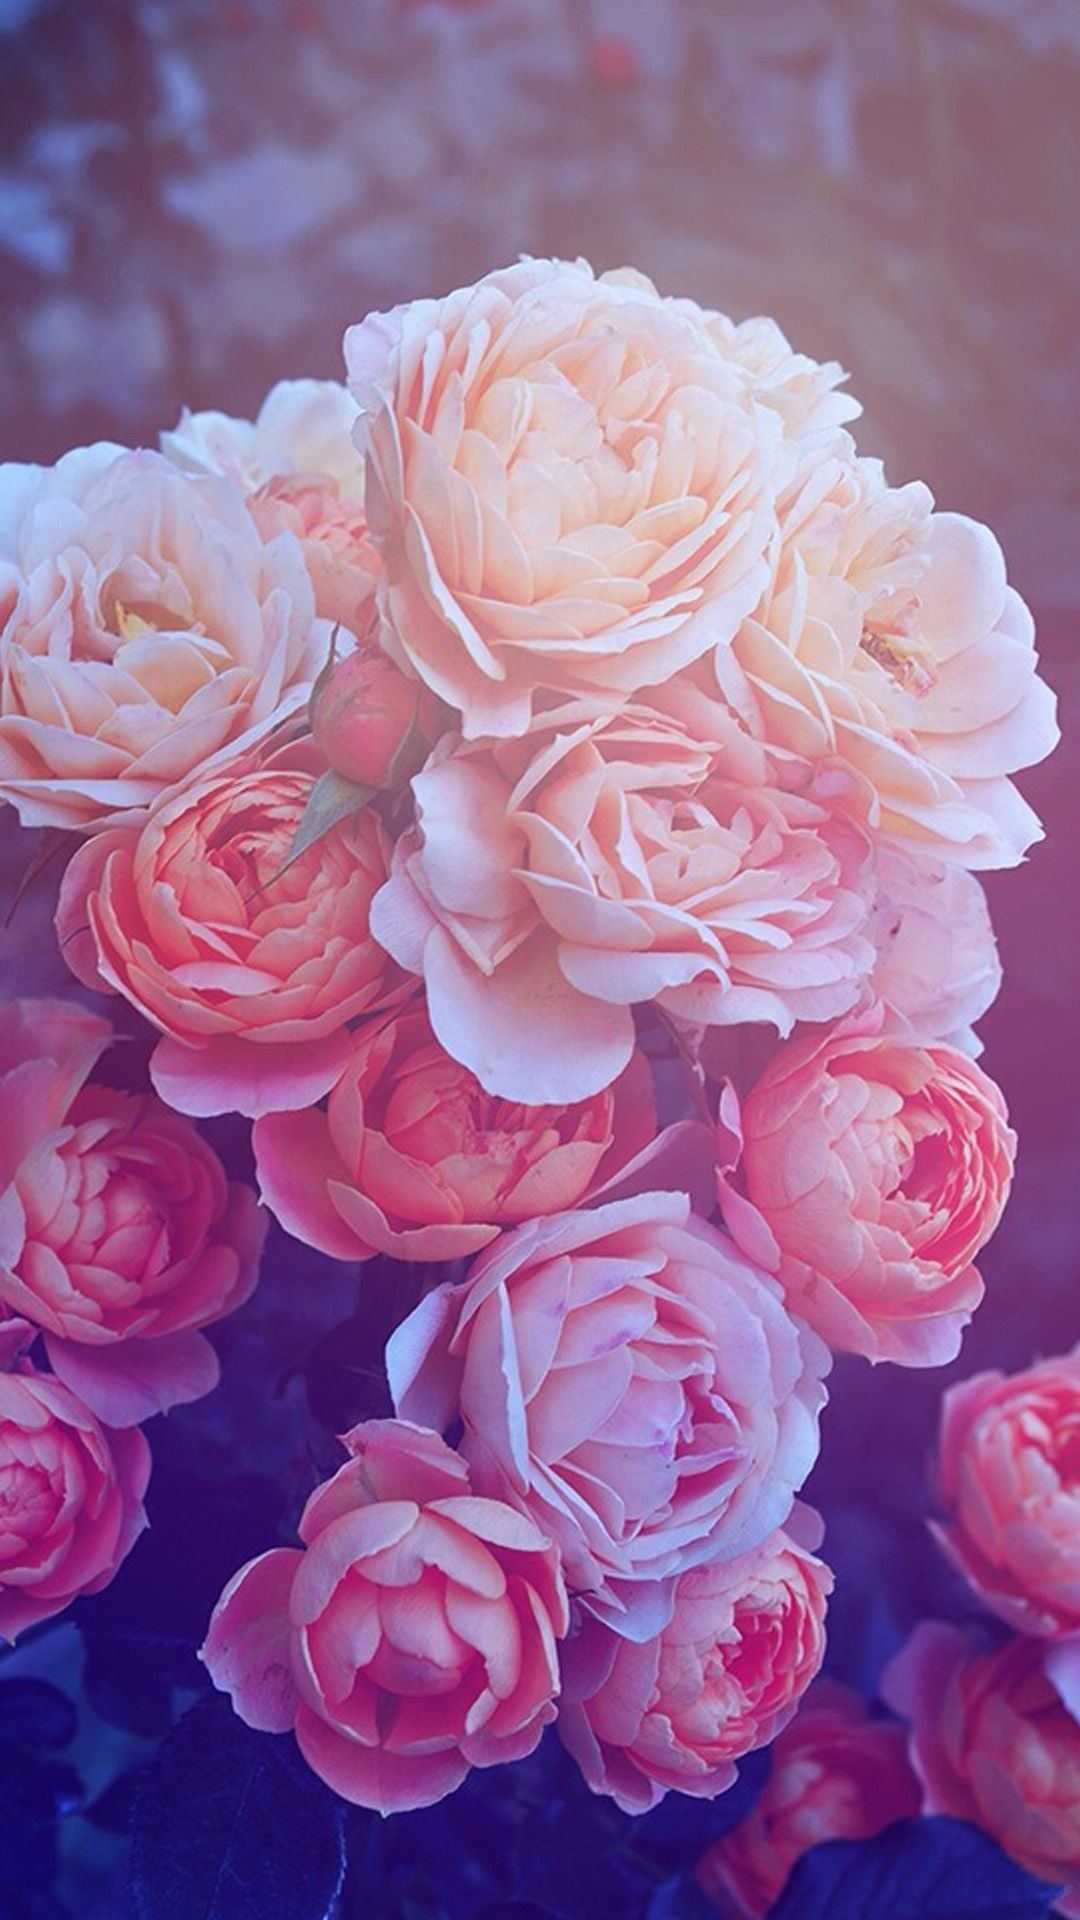 Rose Gold Iphone Wallpaper Posted By Michelle Walker